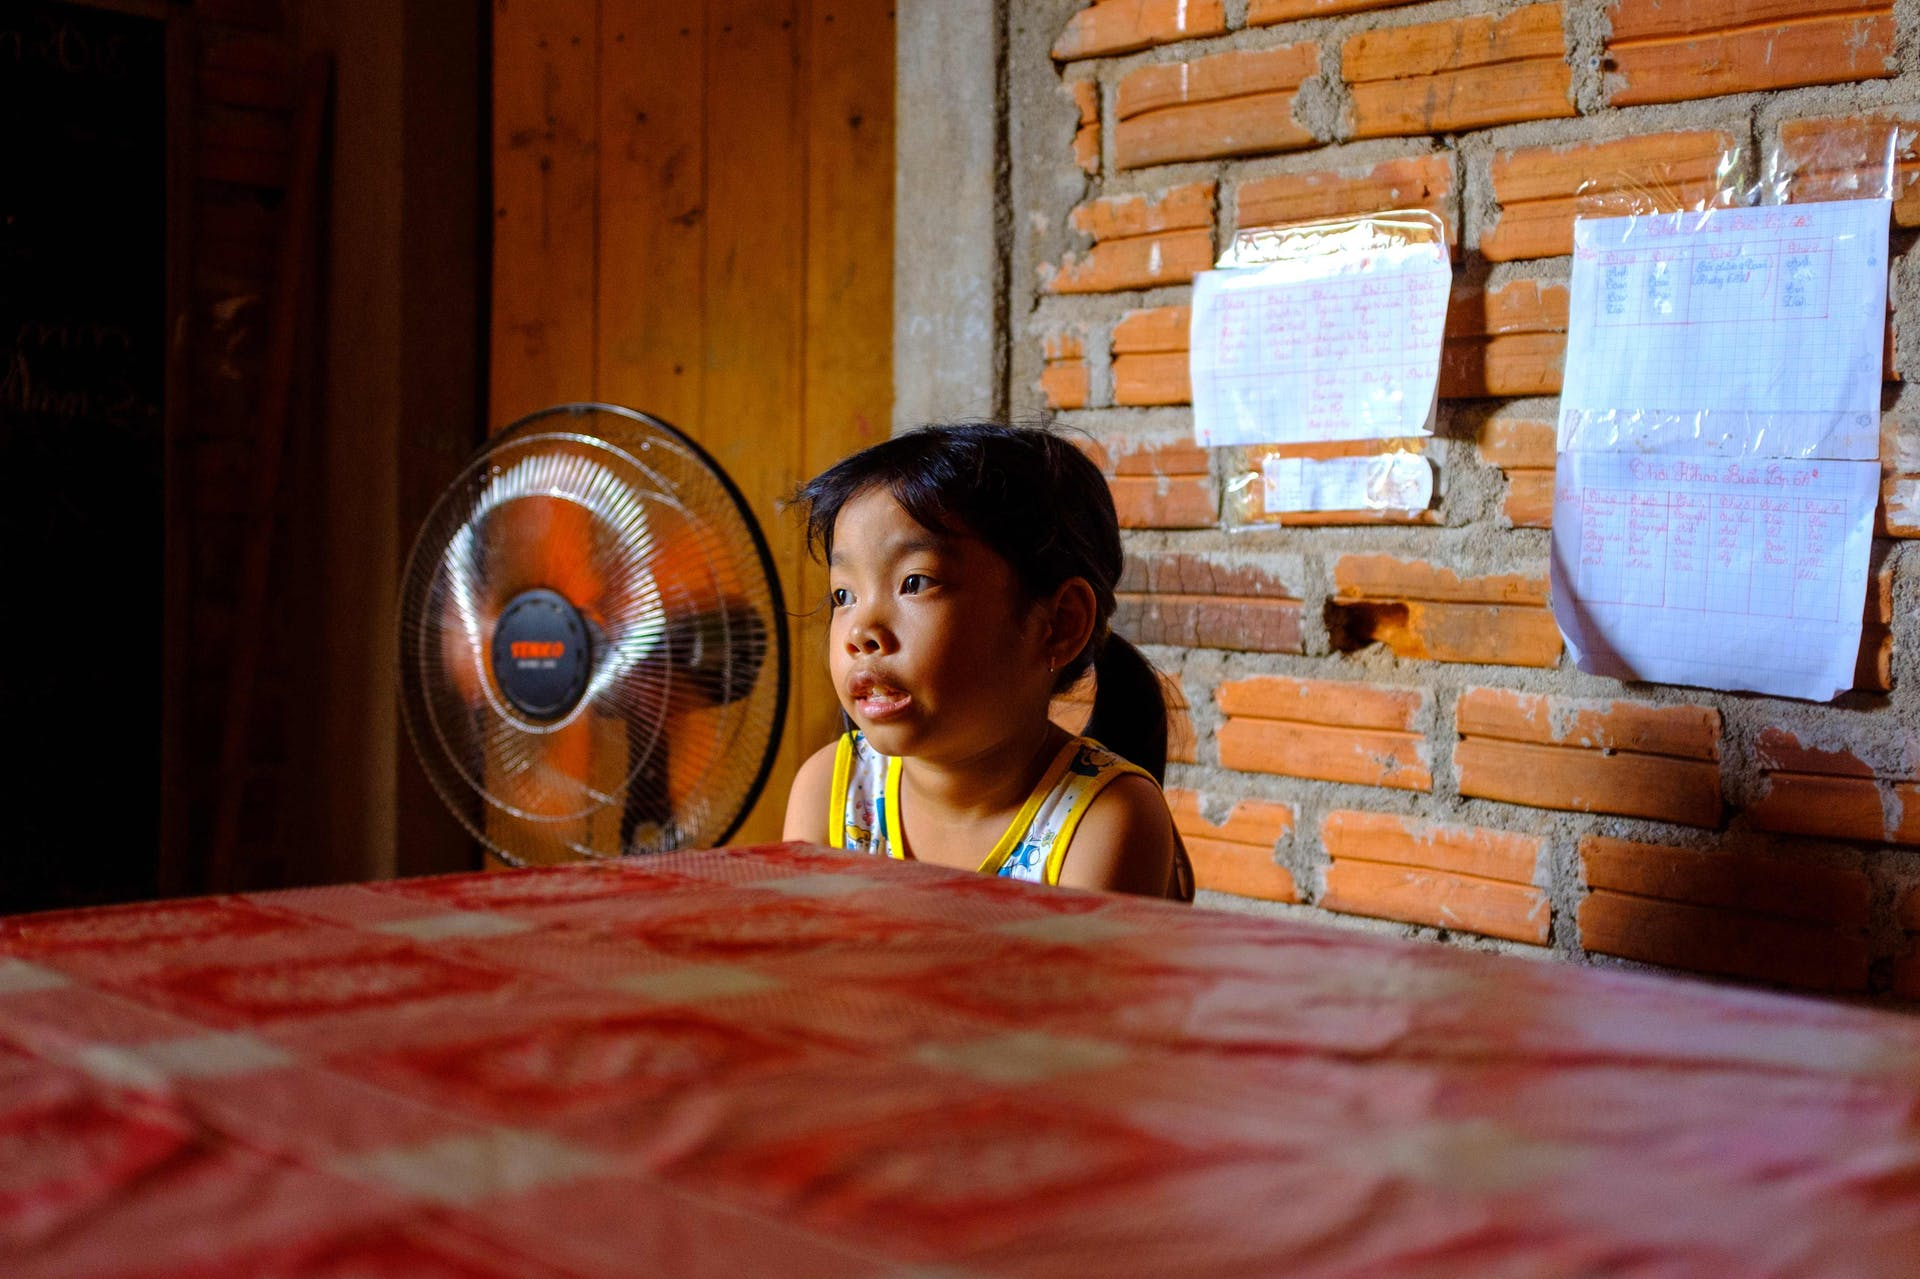 8-year-old strabismus patient Phuong from Vietnam at home following treatment